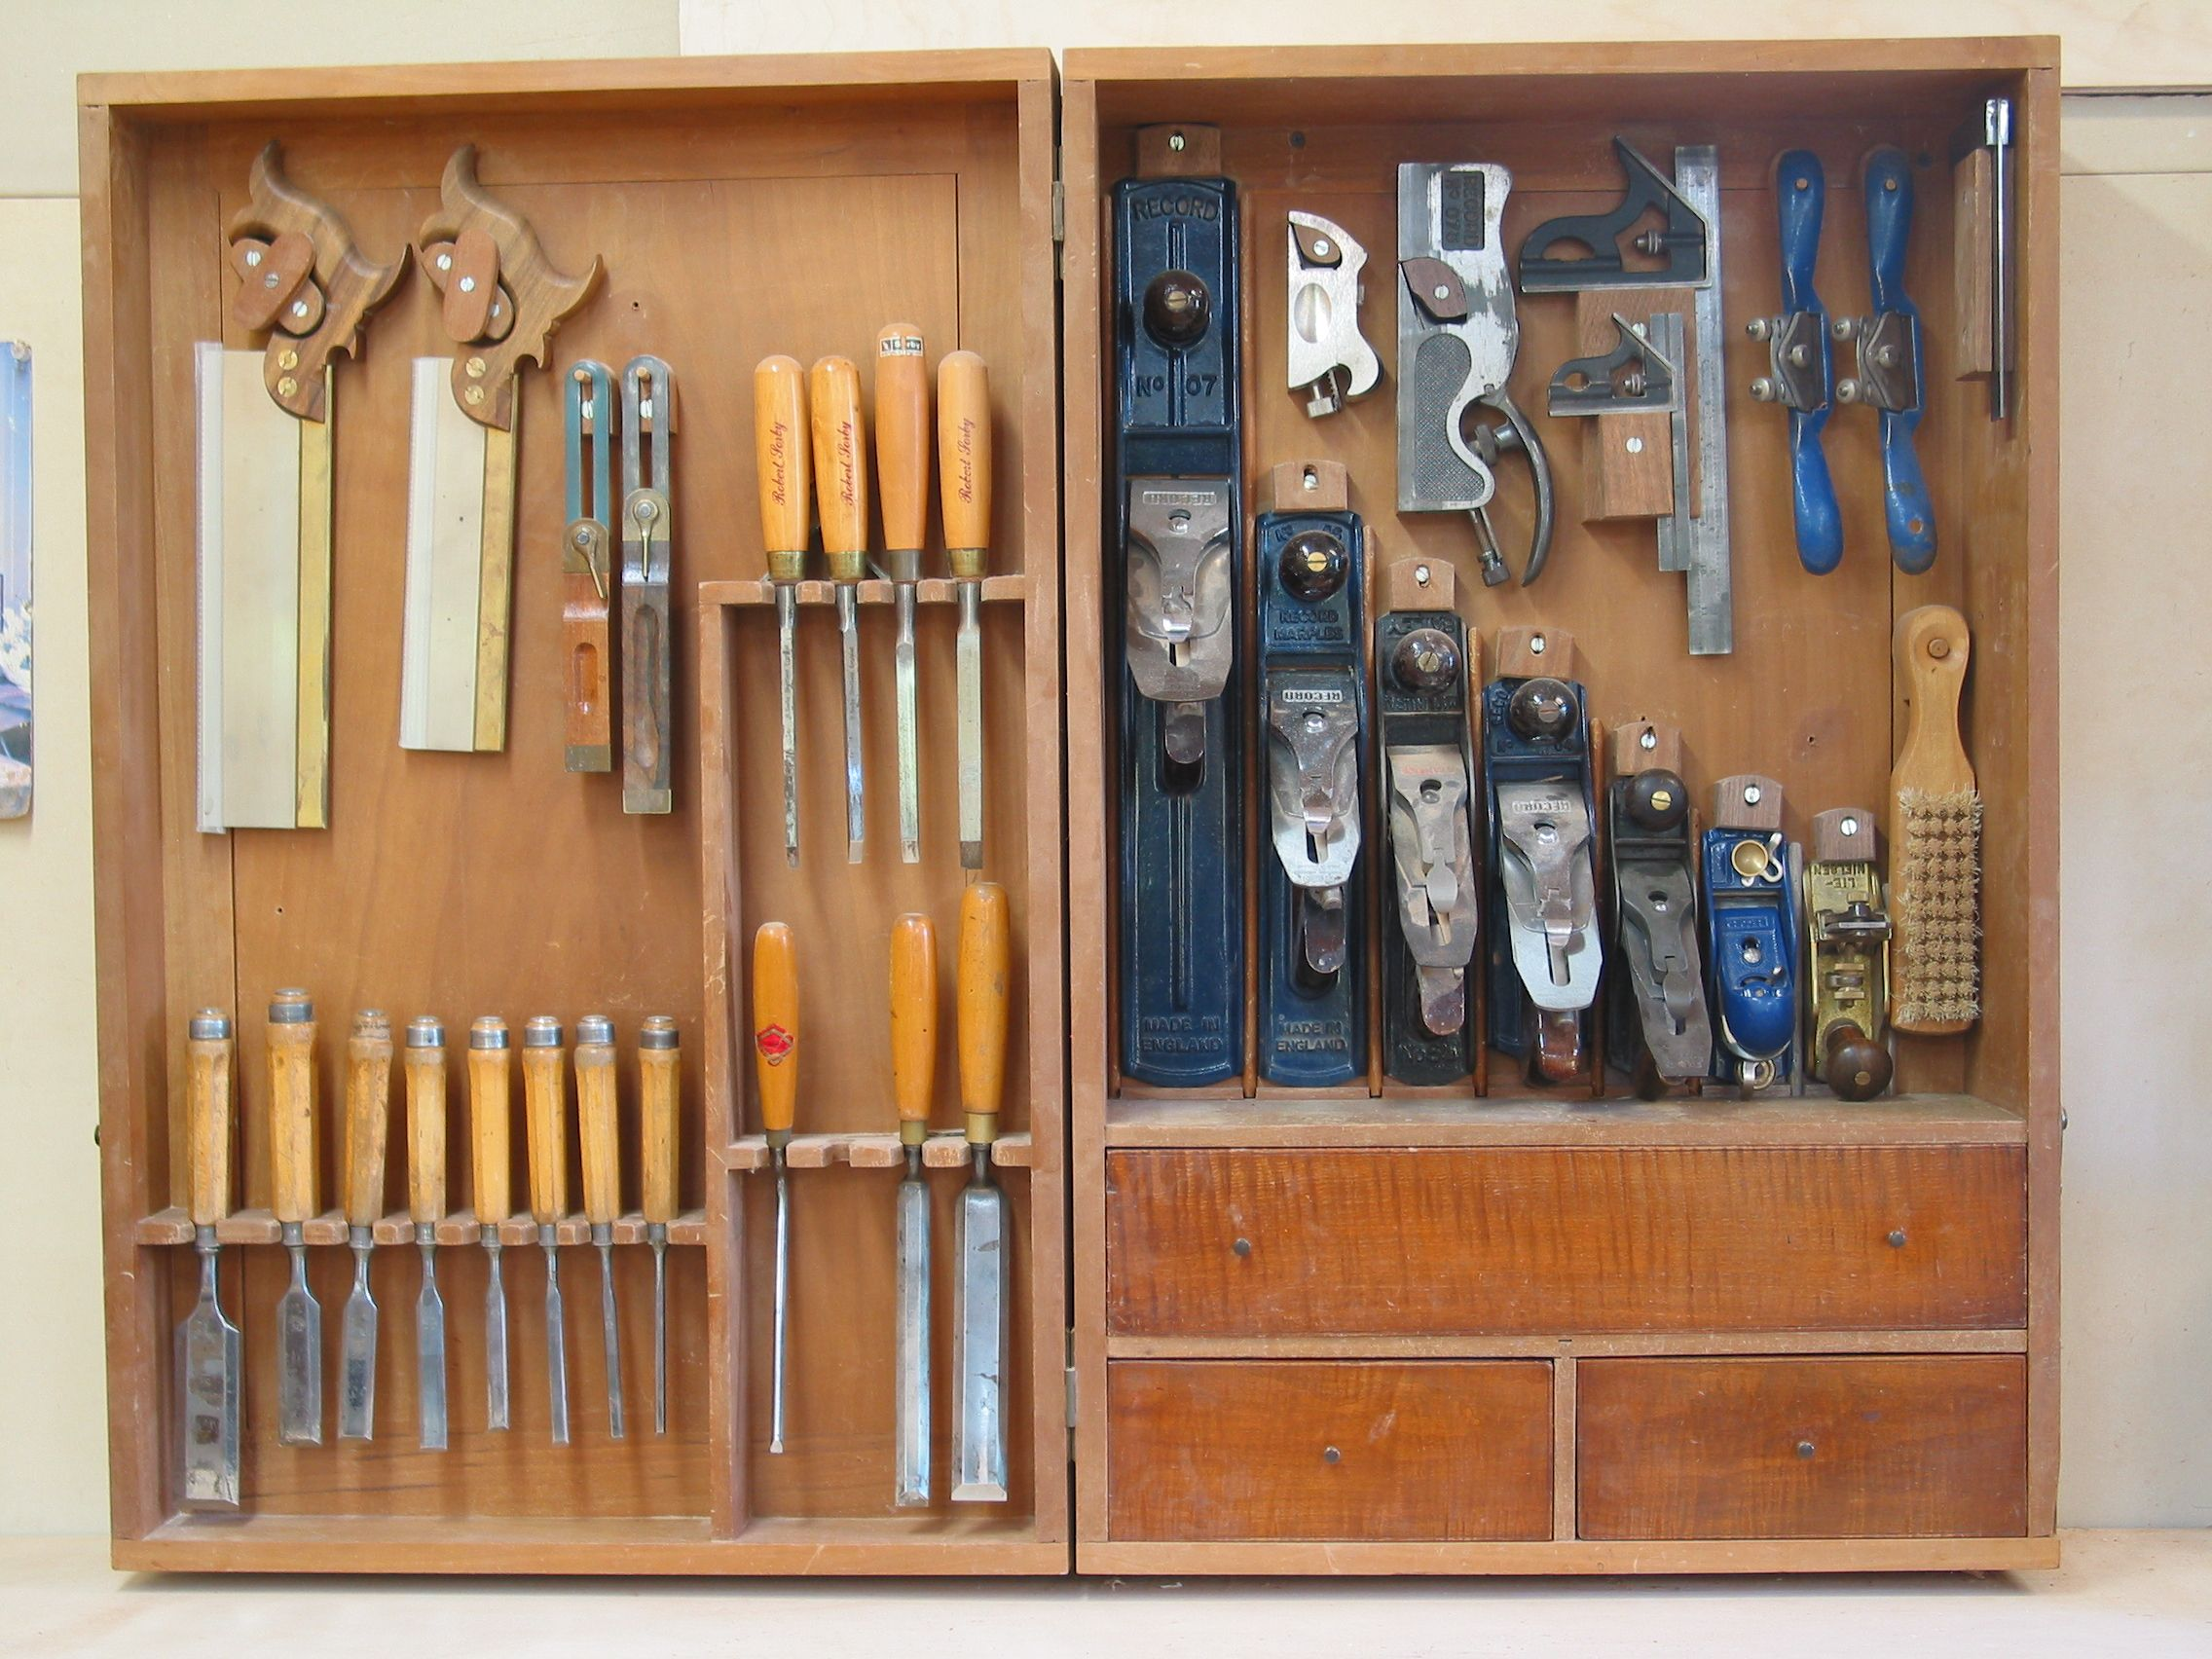 Tool cabinet ideas | Woodworking school | Pinterest | Tool ...